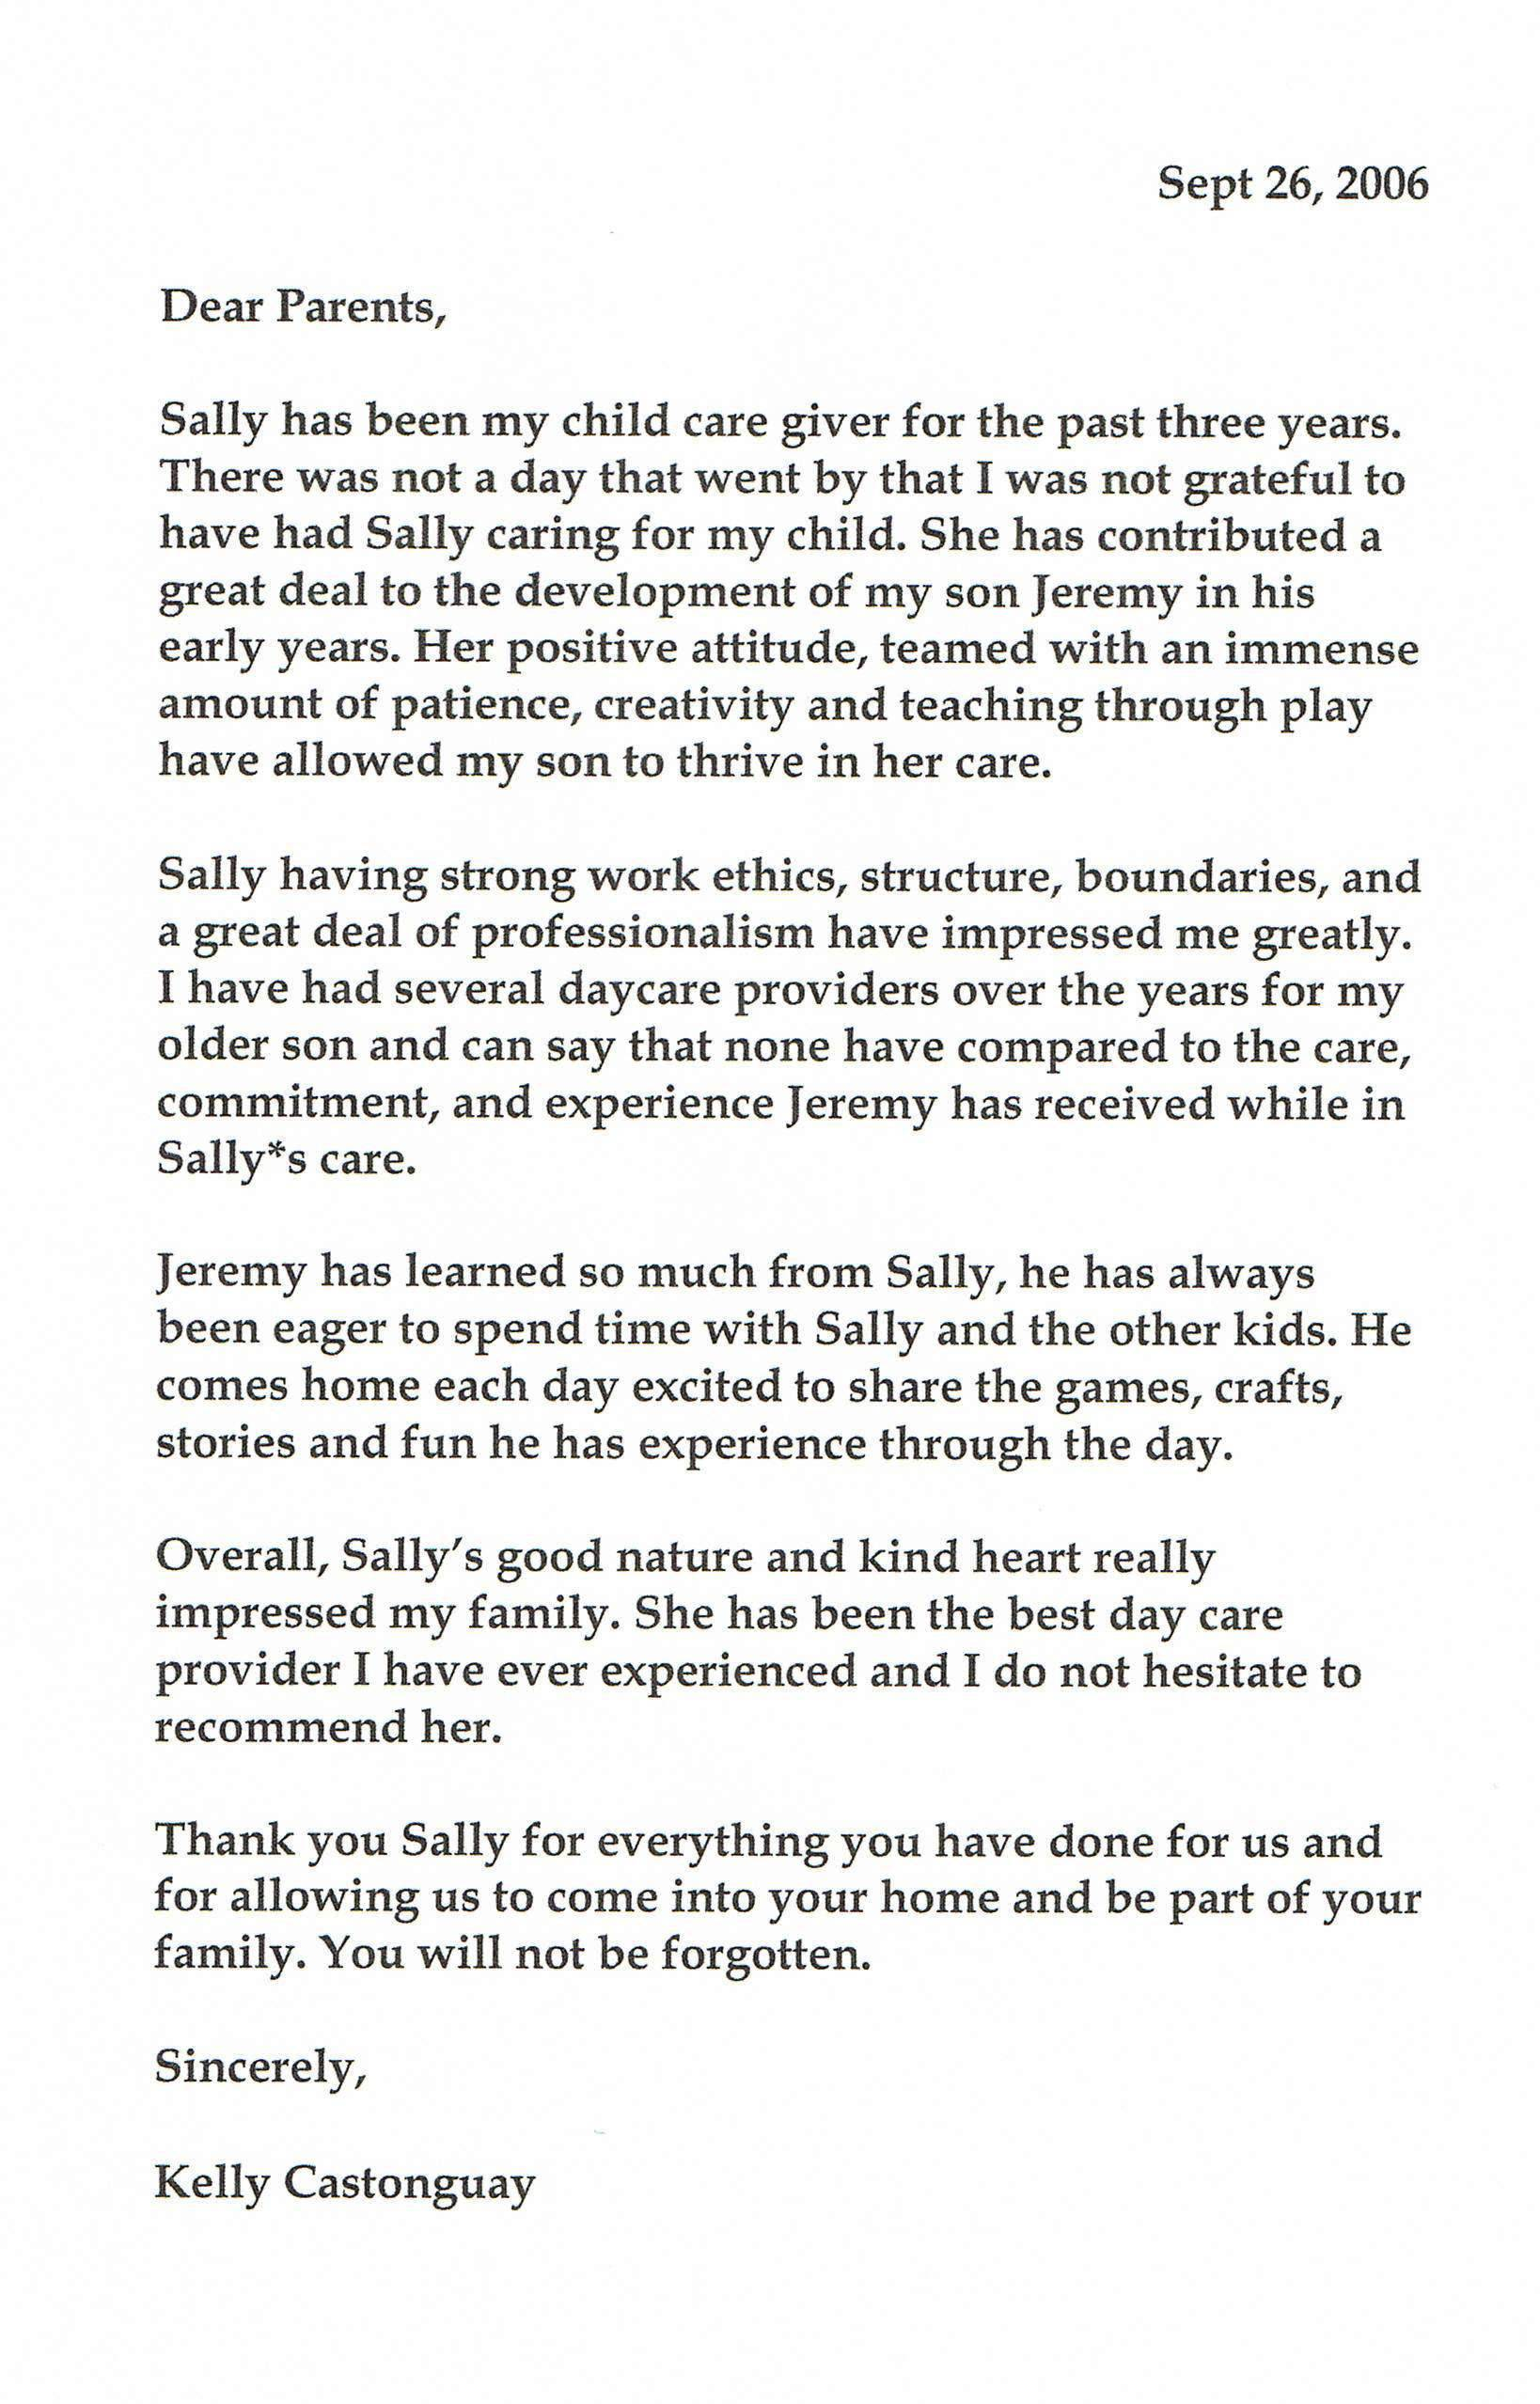 references home grown kids day care reference letter castonguay